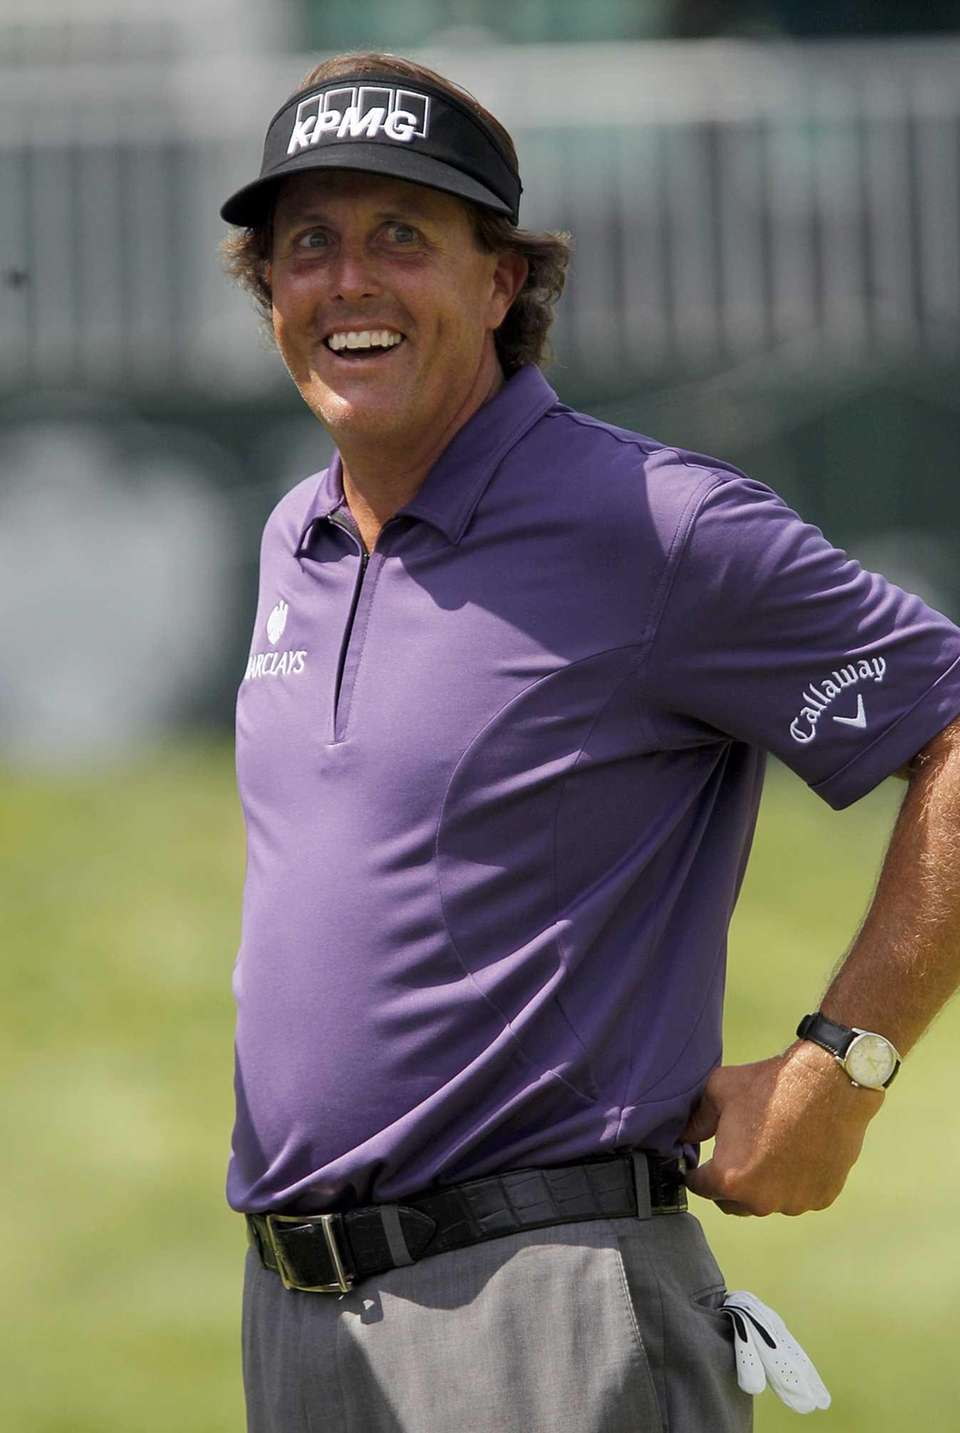 Phil Mickelson shares a lighter moment at the